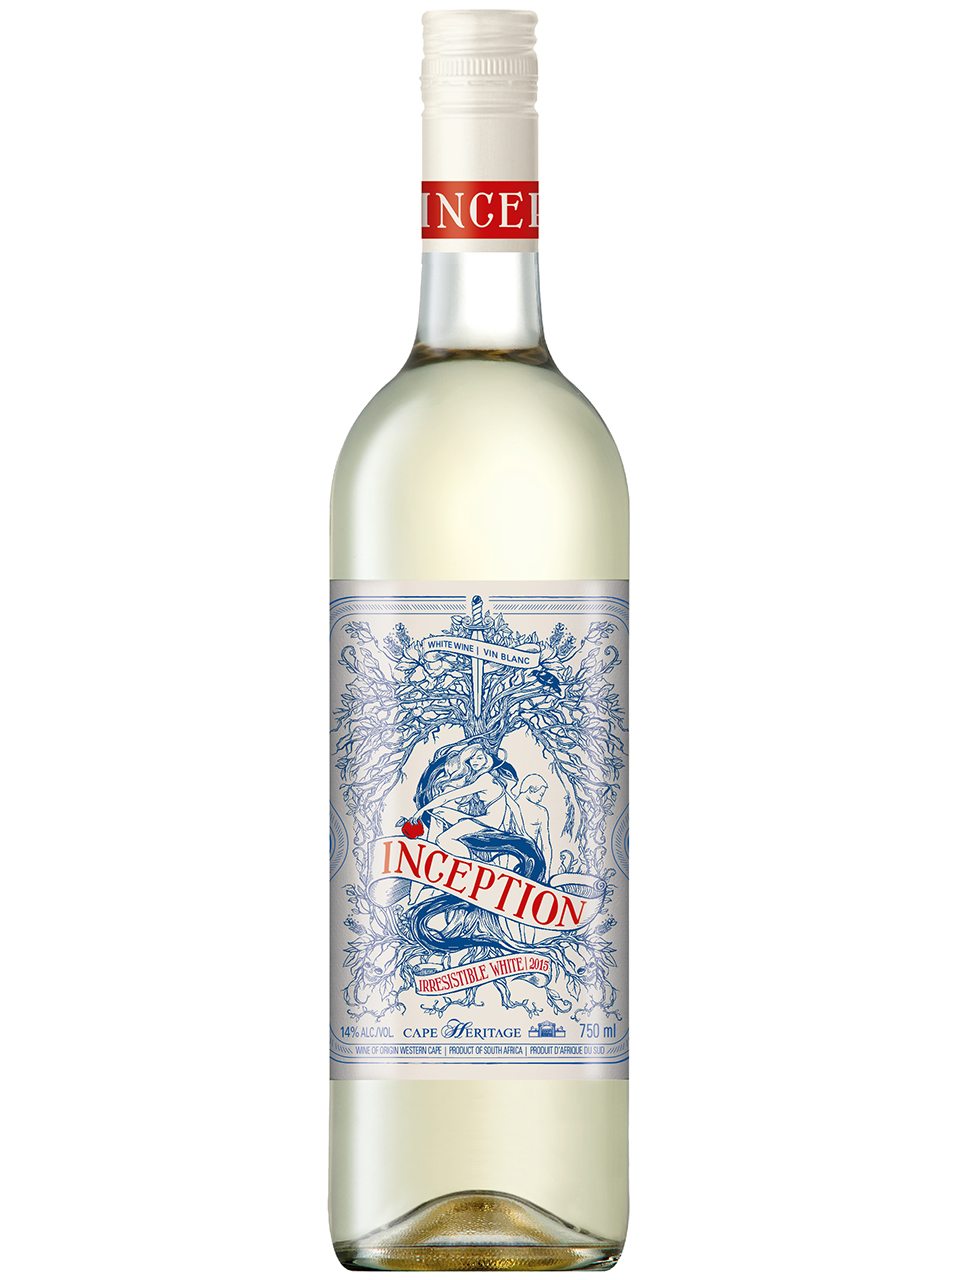 Inception Irresistible White Blend